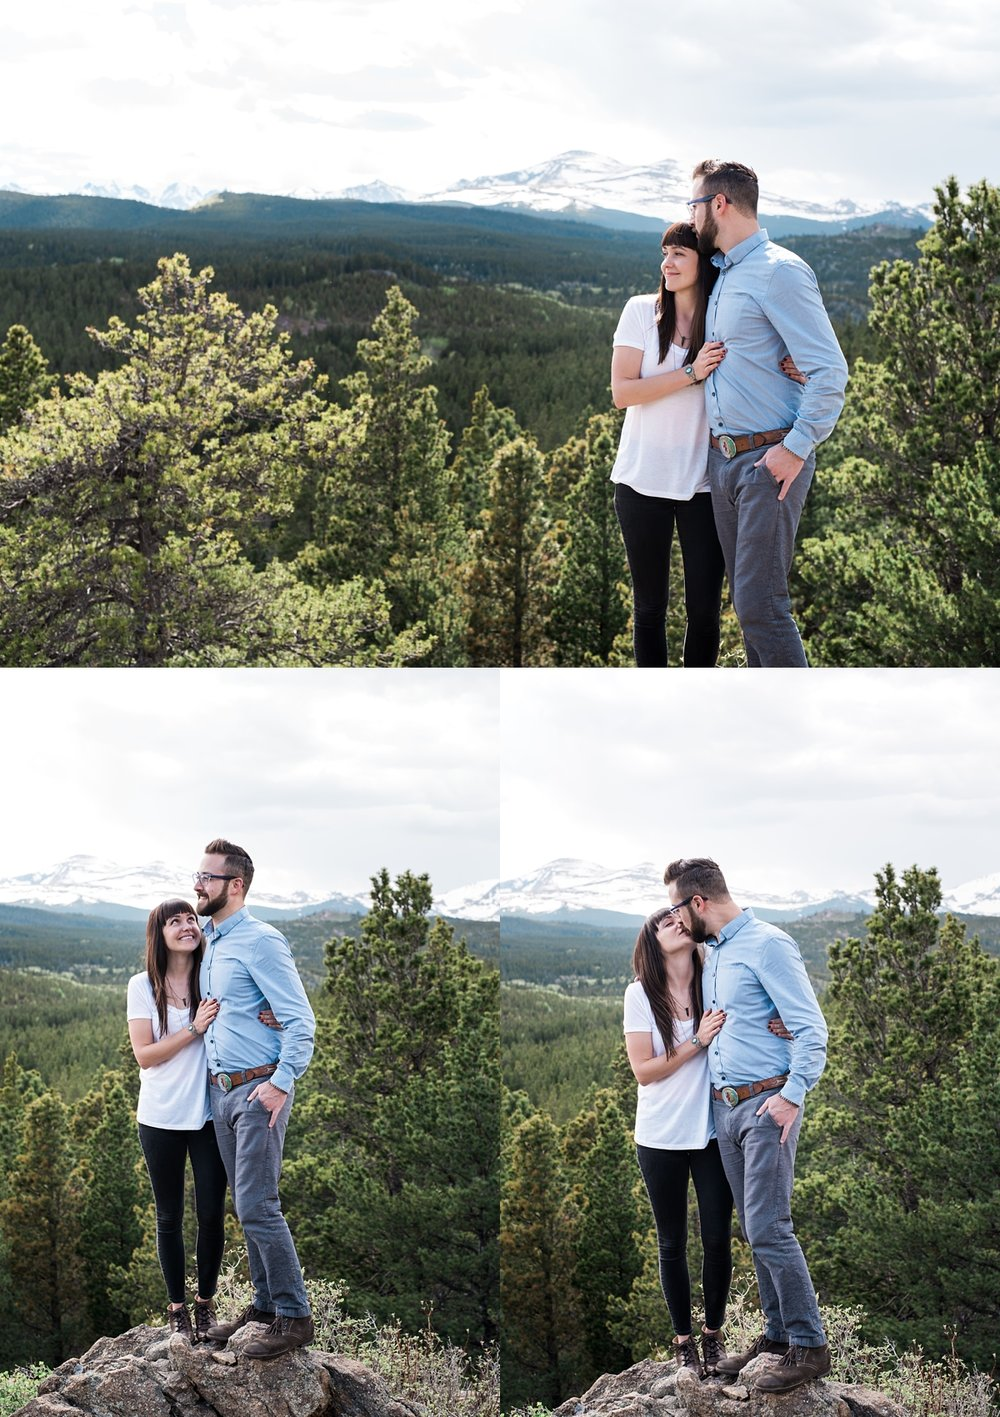 colorado mountain engagement session, colorado mountain wedding photographer, simple engagement session styles